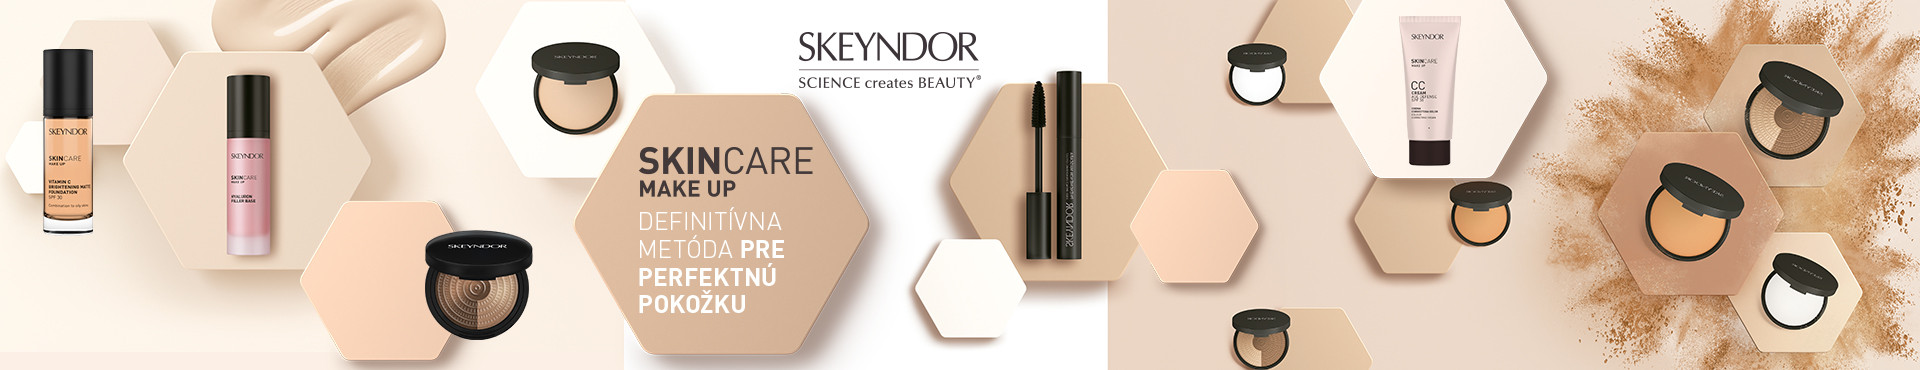 SKIN CARE SKEYNDOR